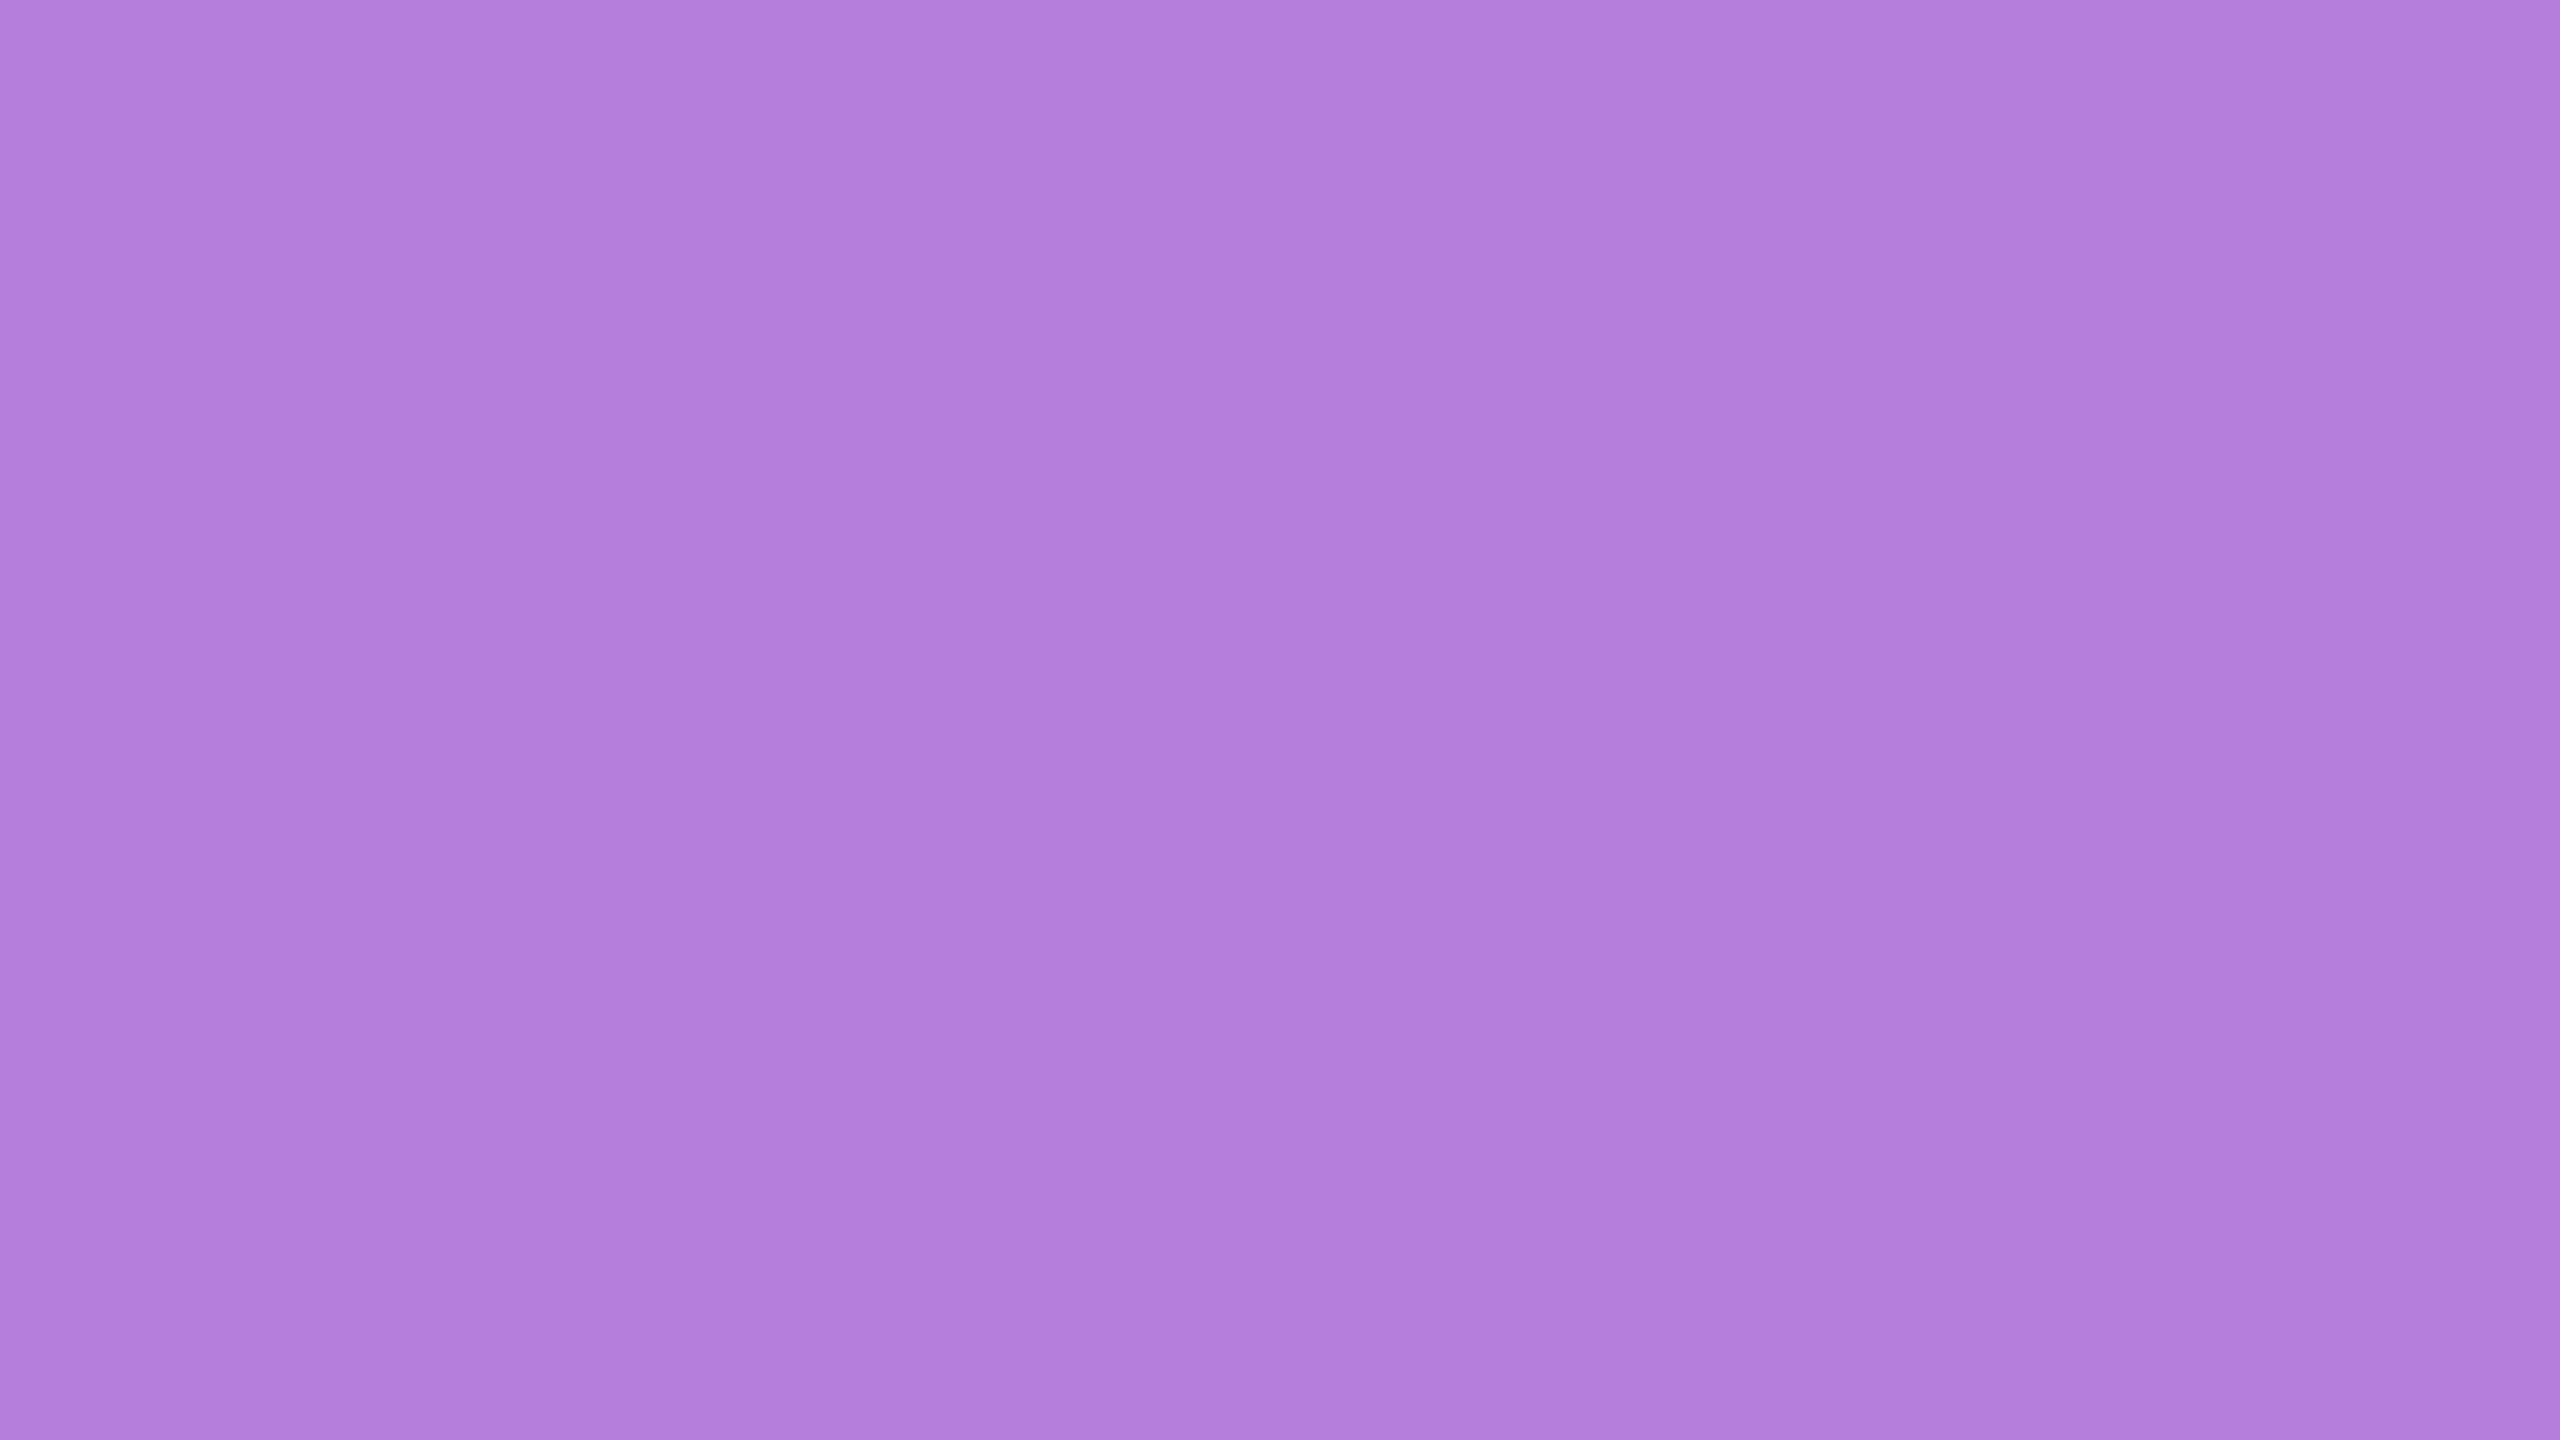 Privacy Policy >> 2560x1440 Lavender Floral Solid Color Background